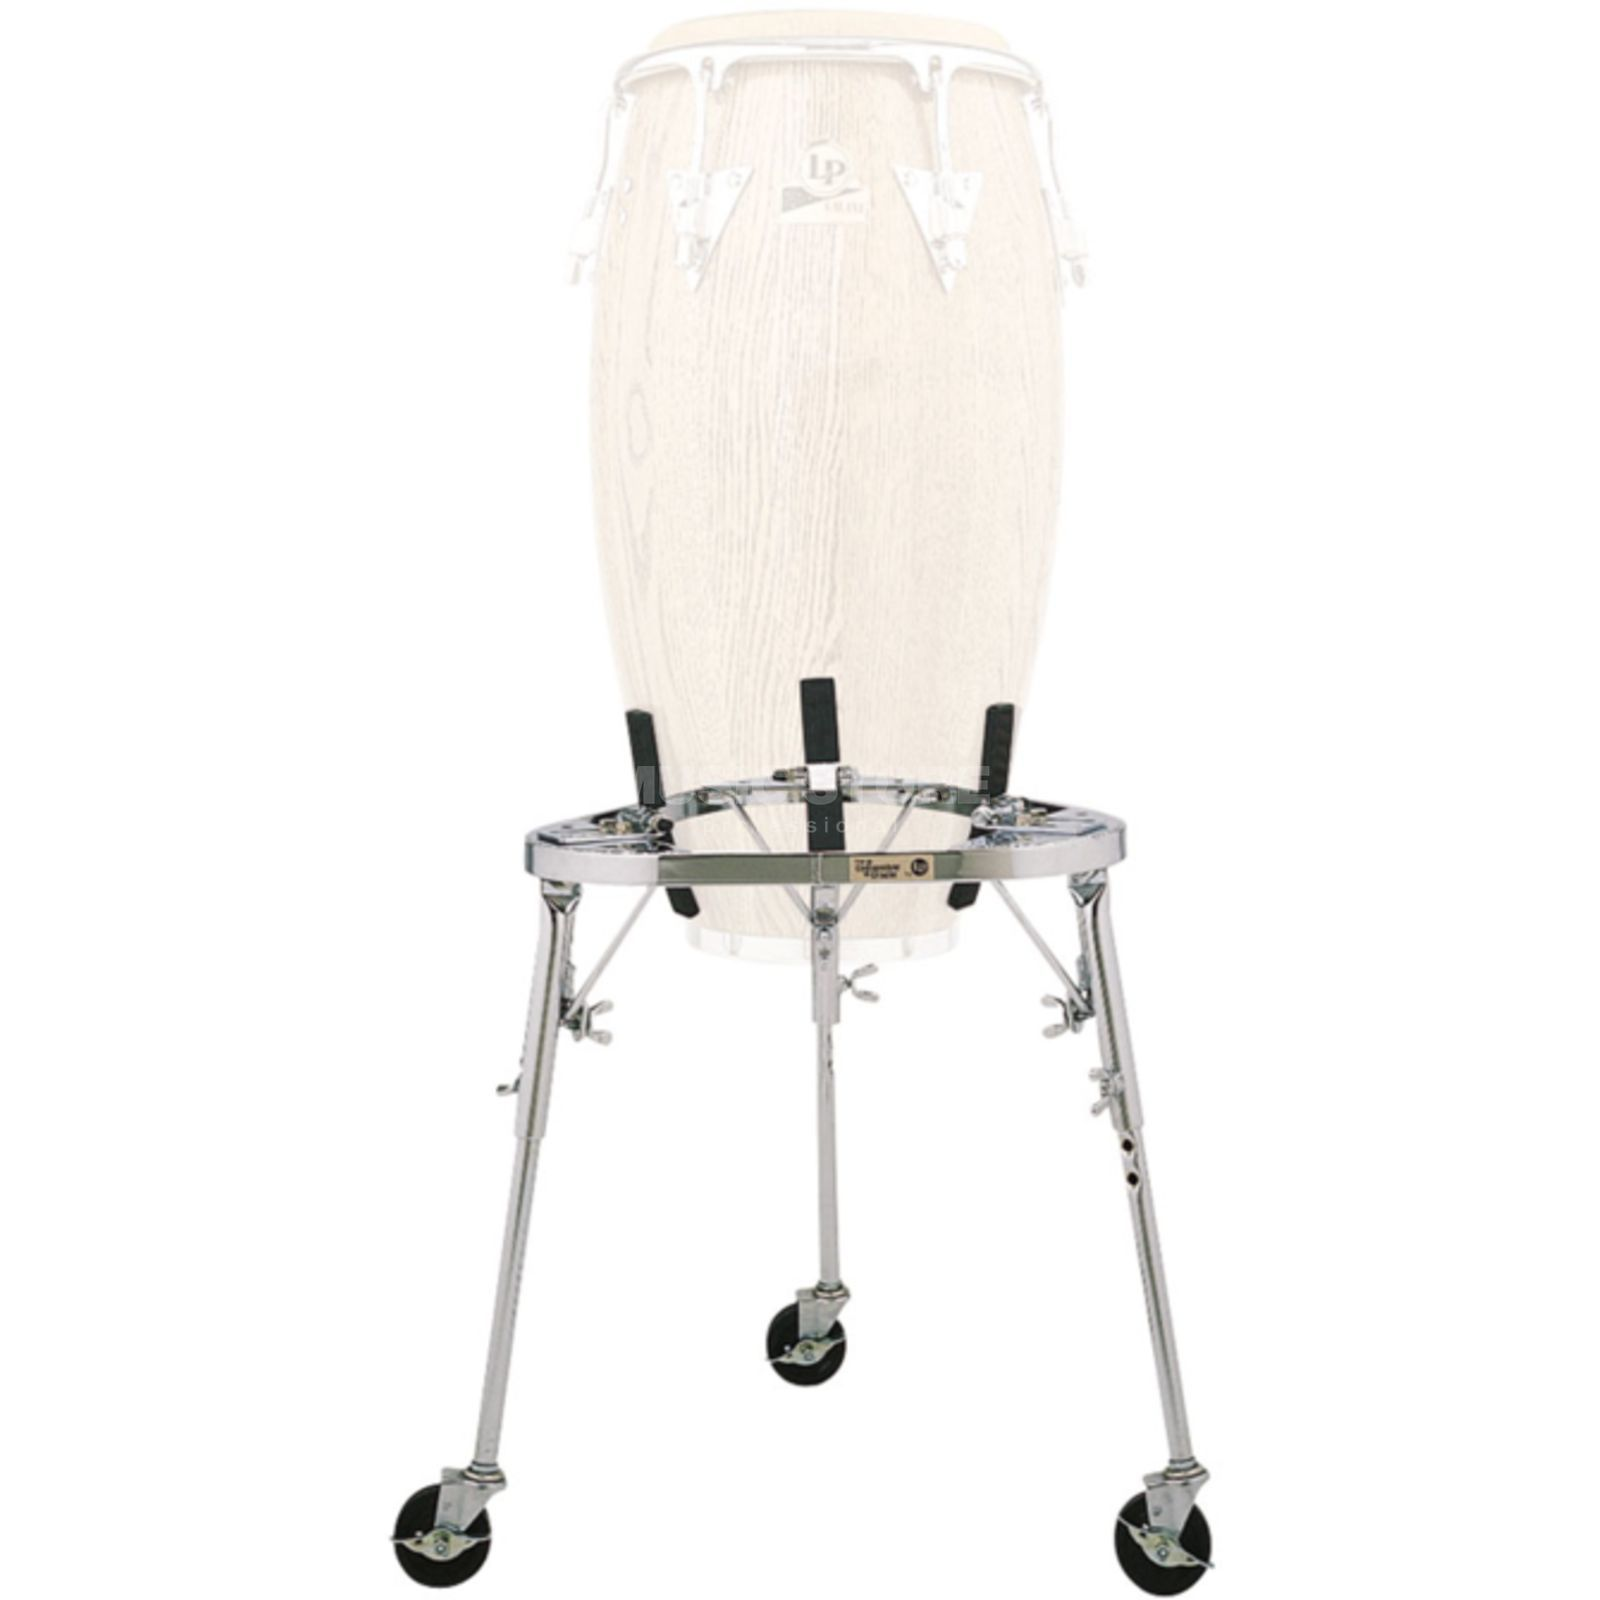 Latin Percussion Congastand LP636, w/wheels Productafbeelding